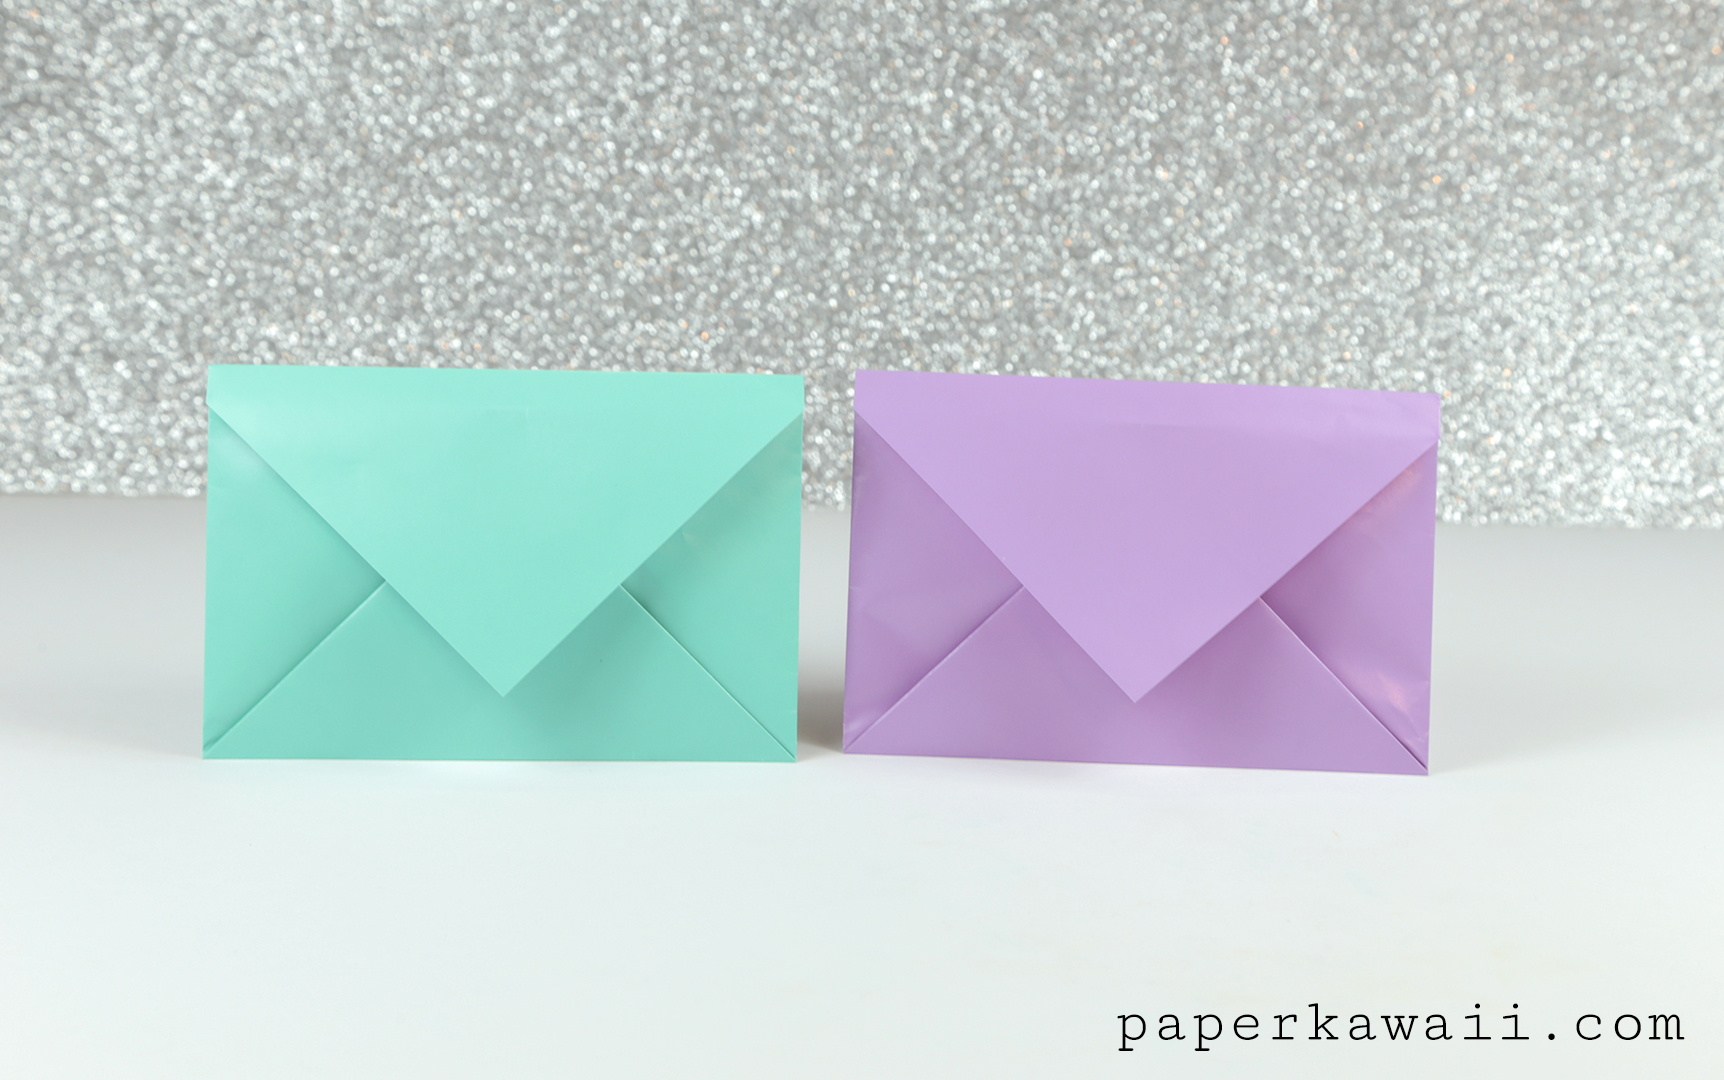 printable pokeman valentines day cards - Simple Origami Envelope Video Tutorial Paper Kawaii